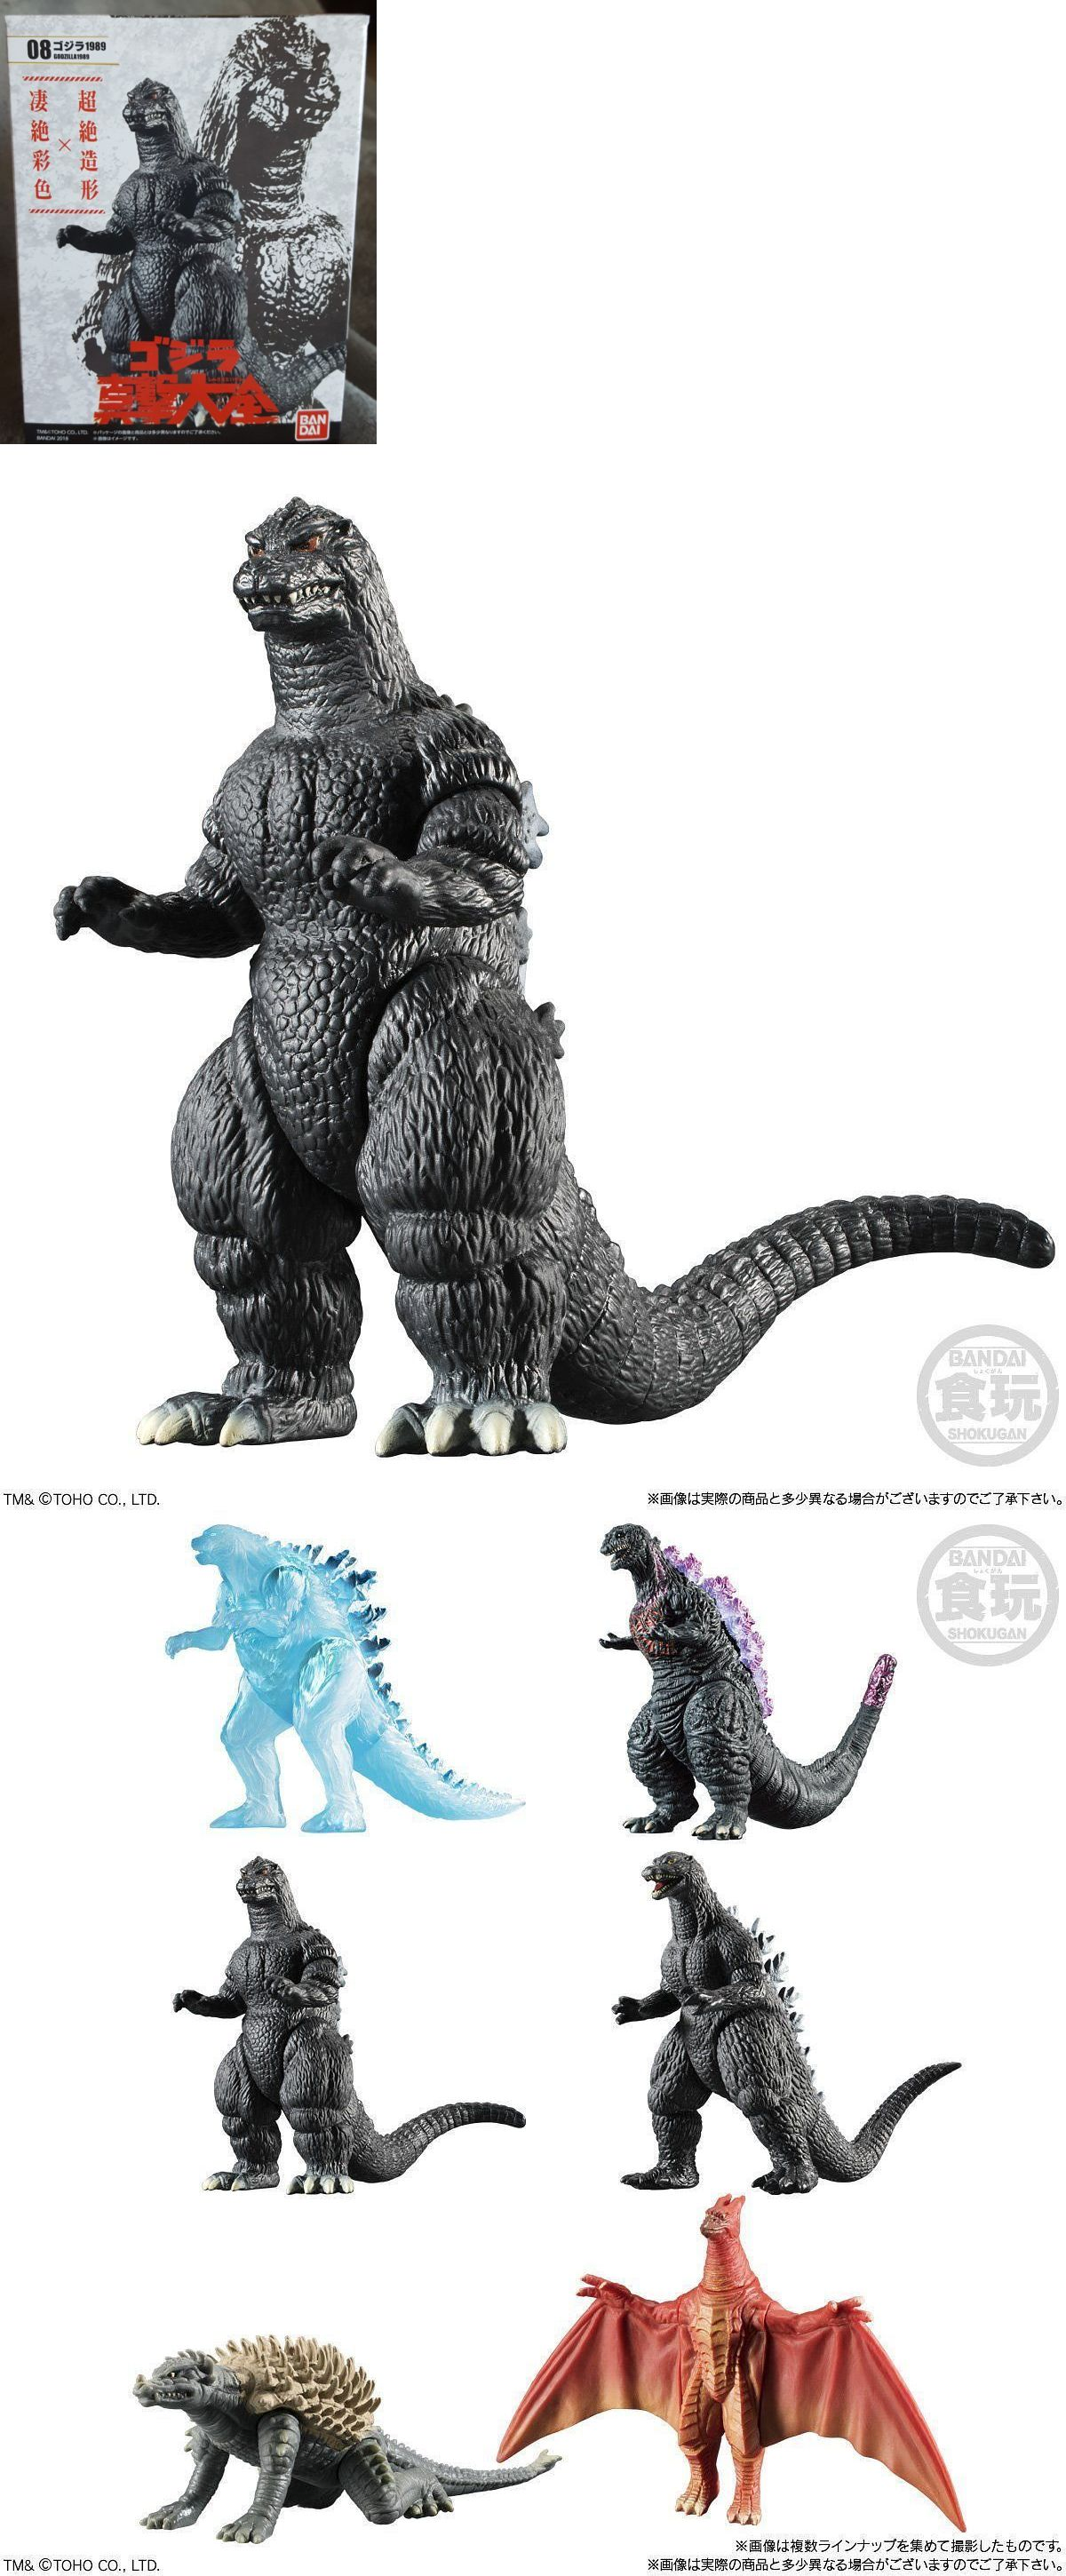 Monsters 19193: 4 1989 Godzilla Hg Series 2 Vinyl Mint Box ...